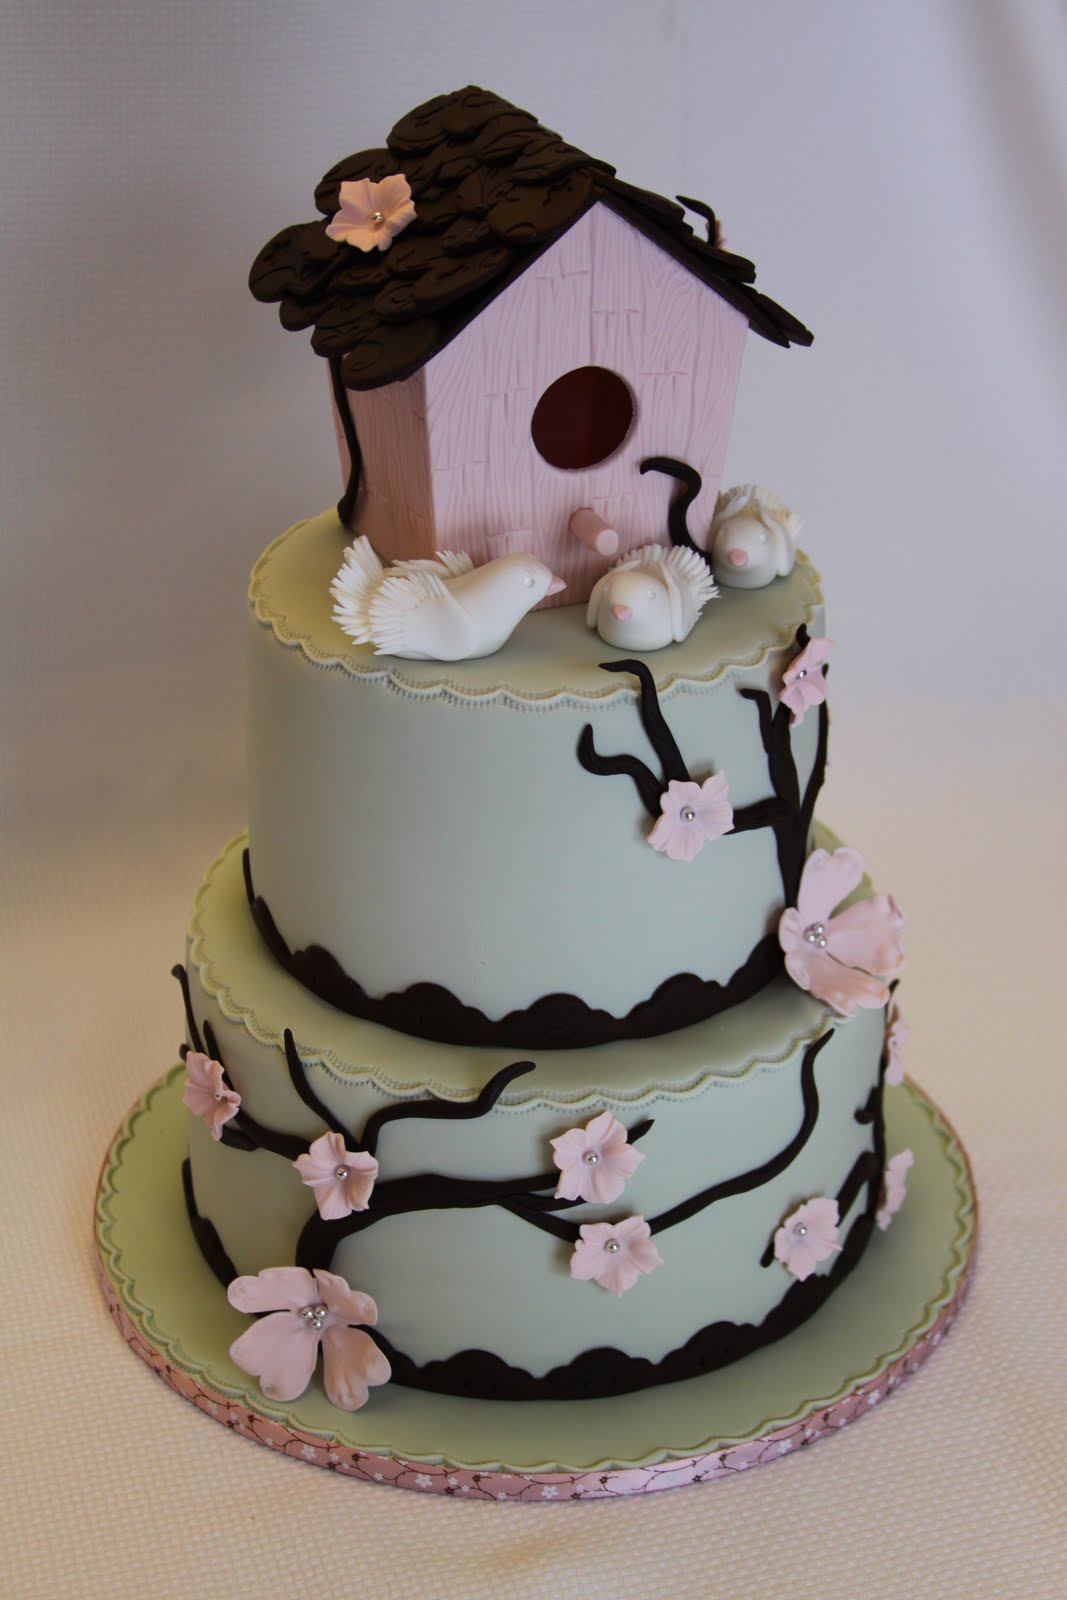 Cake Designs For Housewarming : .: Birdhouse Housewarming Cake